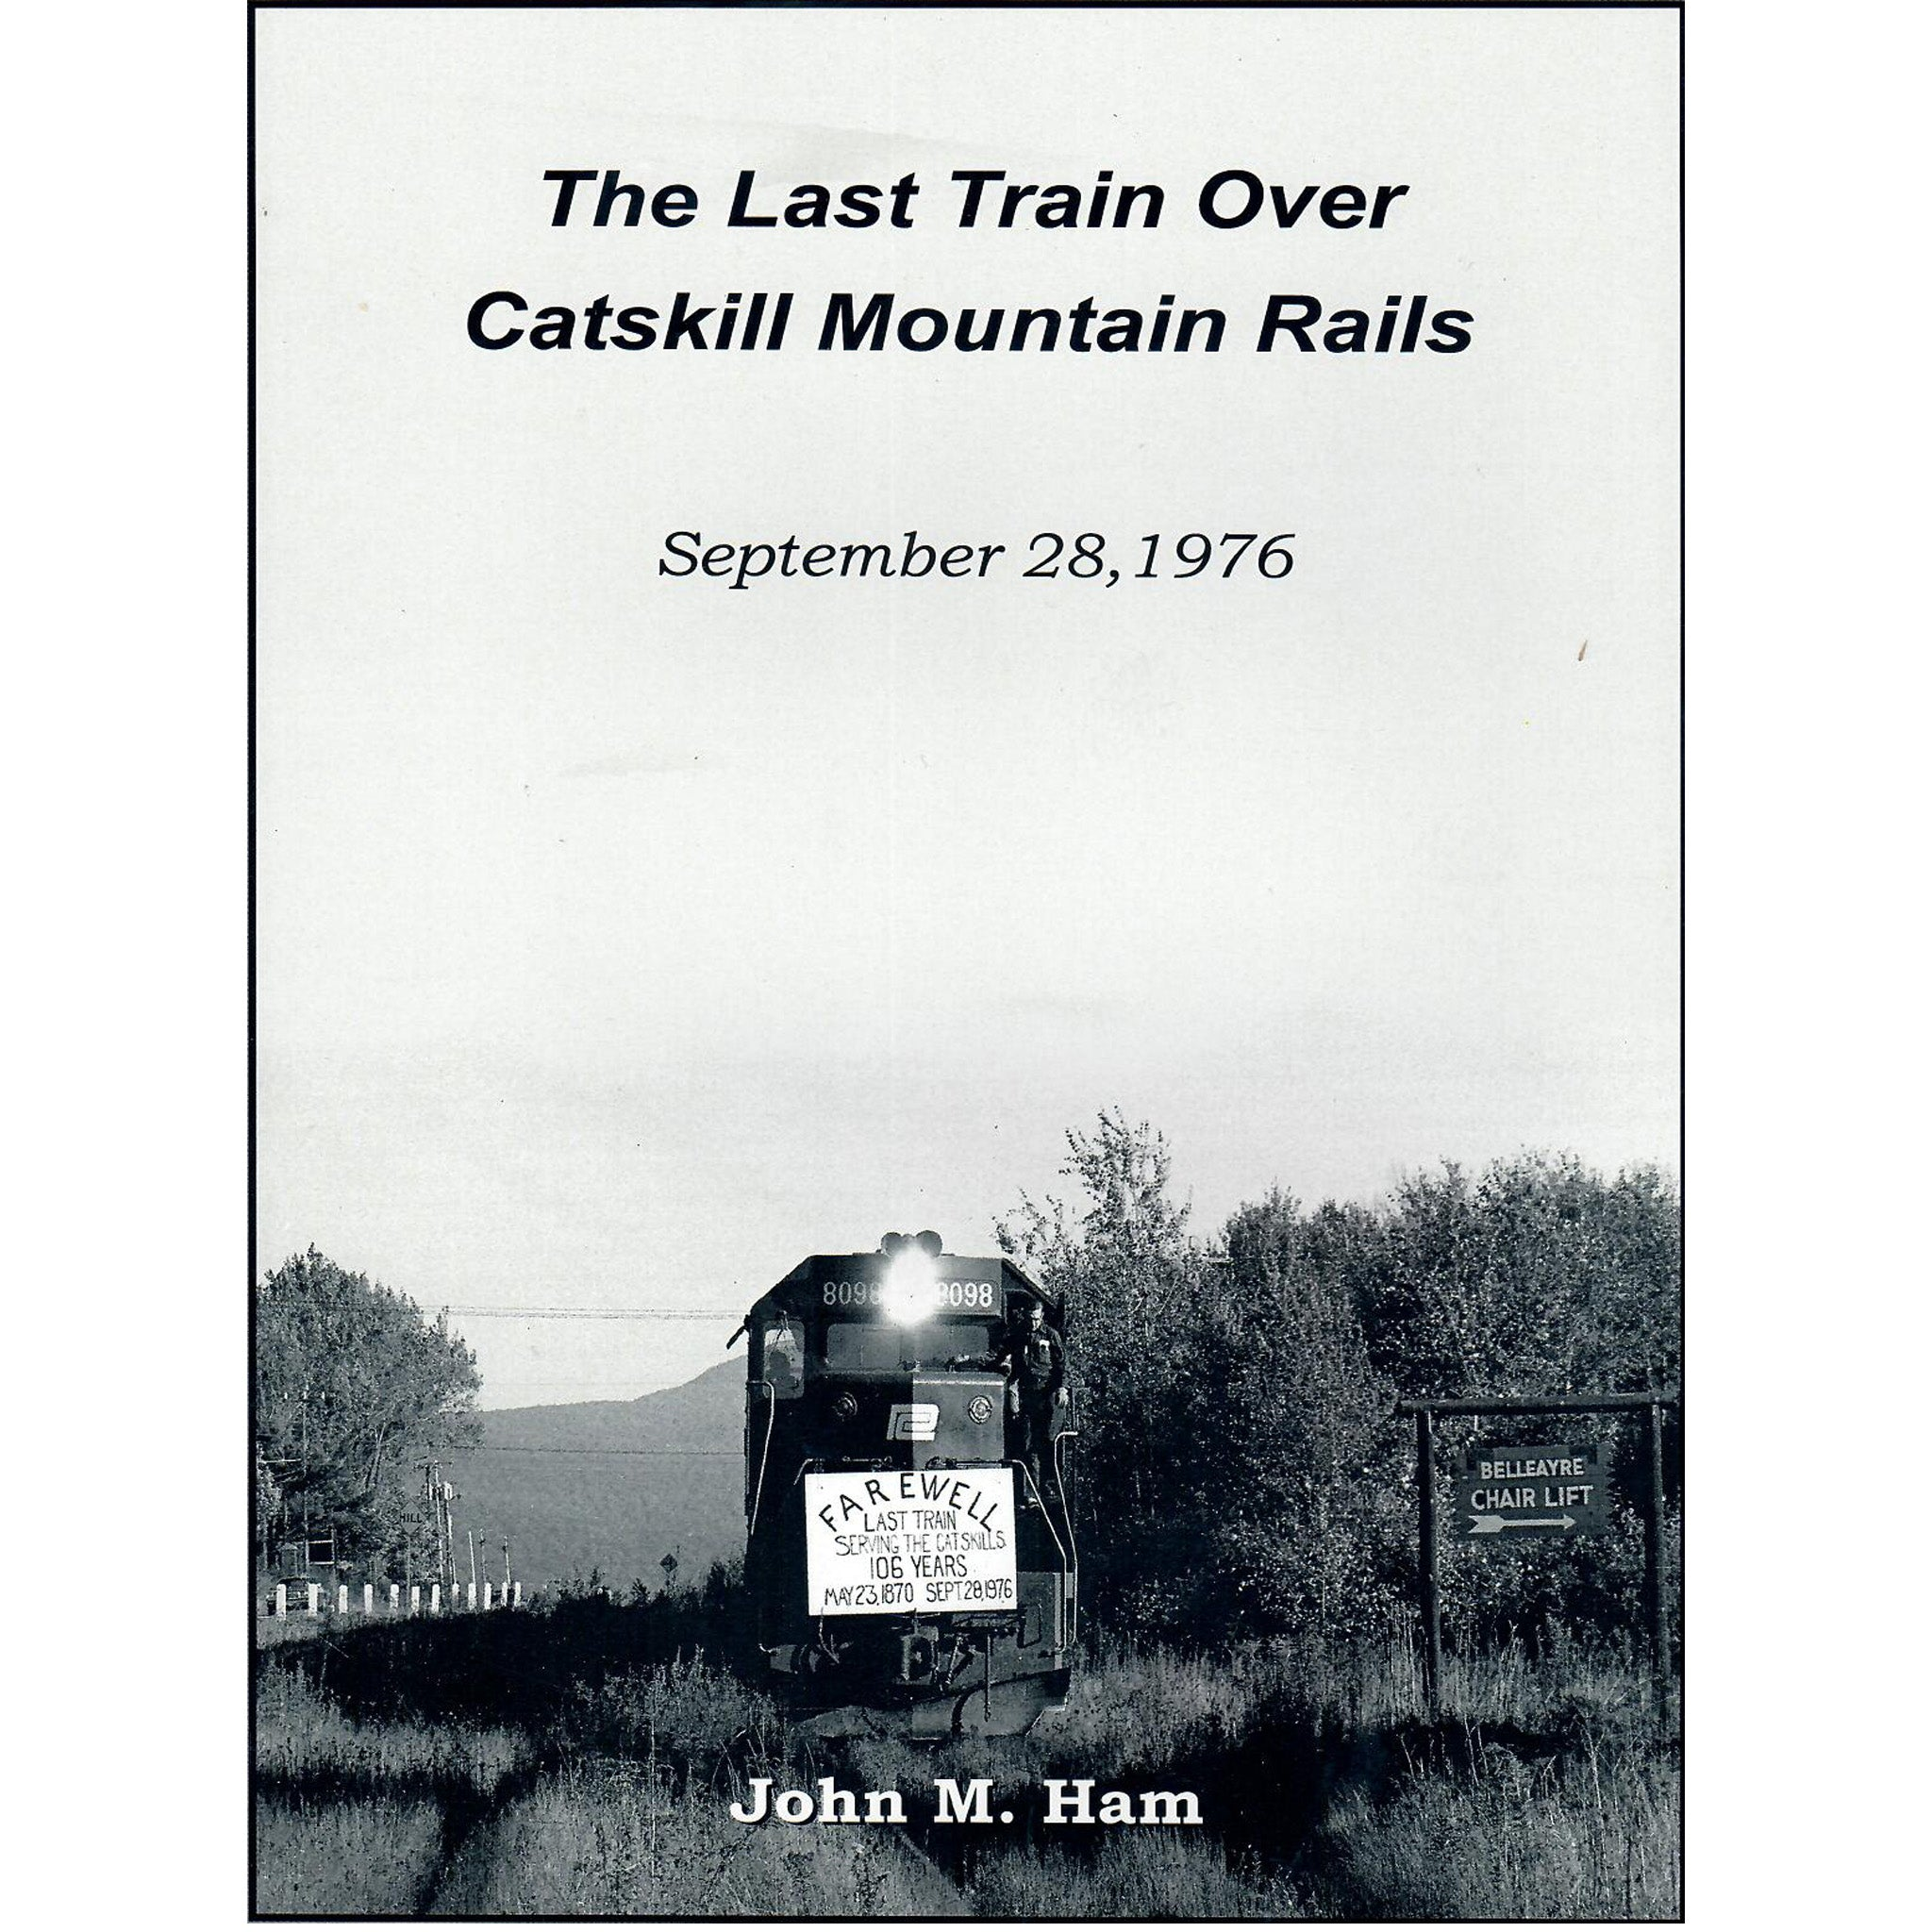 The Last Train over Catskill Mountains